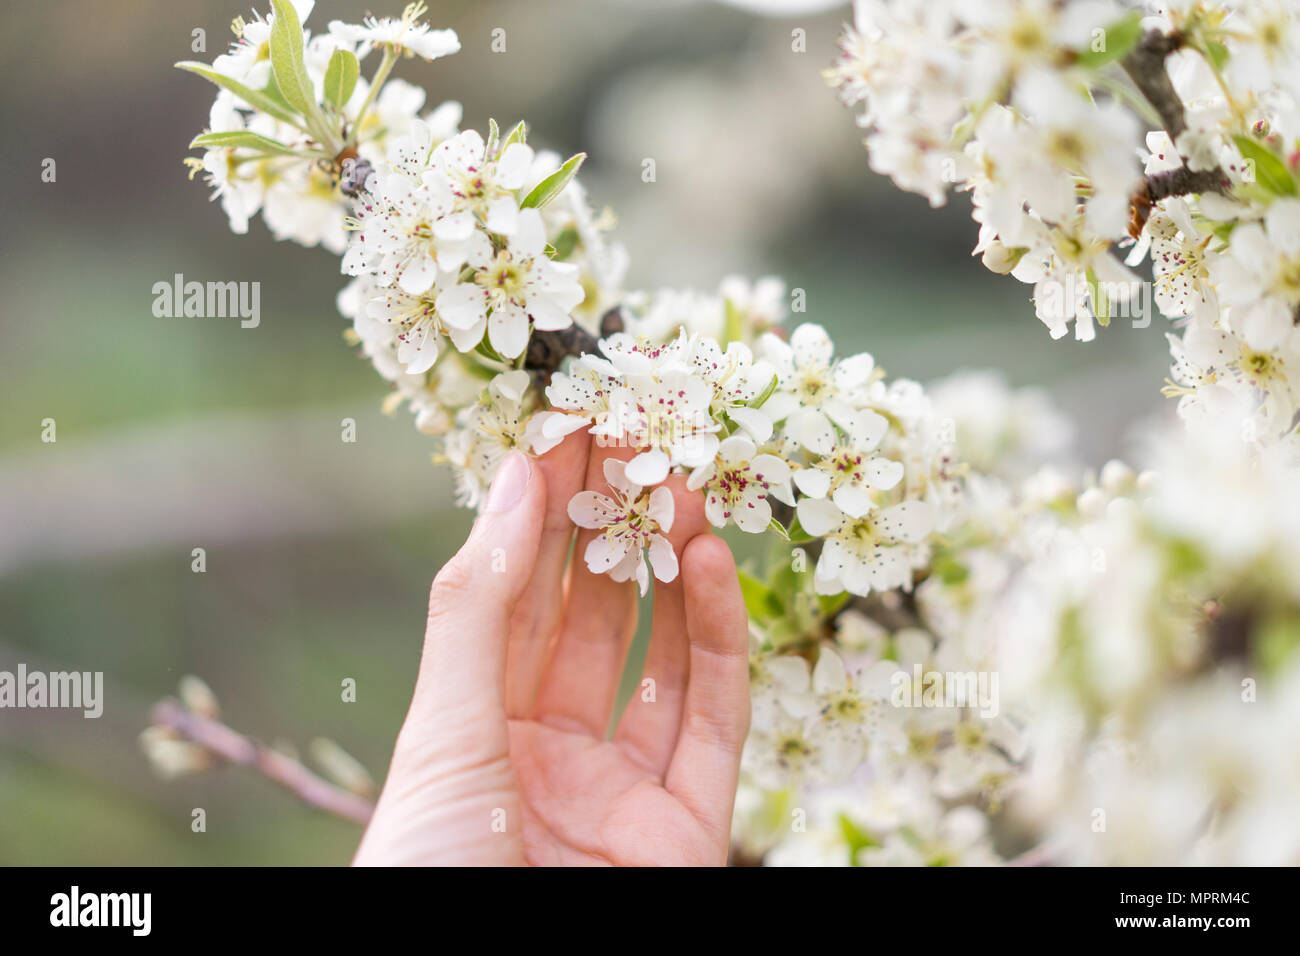 Hand touching white blossoms of fruit tree, close-up - Stock Image